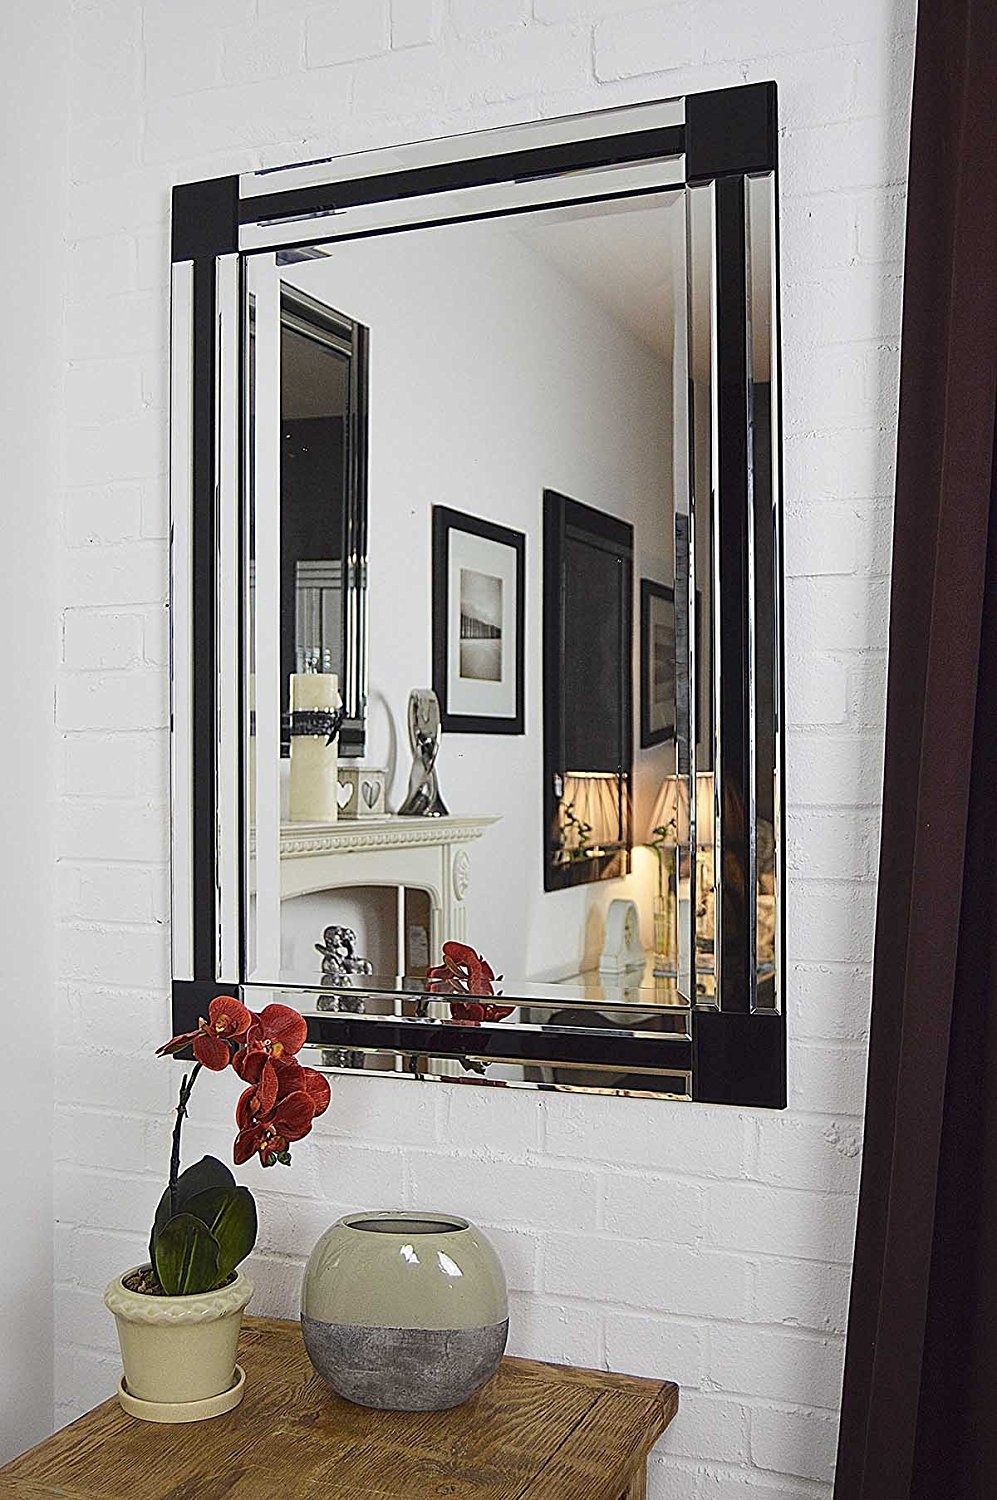 3ft11 X 2ft7 120cm X 80cm Blacksilver Bevelled Frameless Wall Pertaining To Modern Bevelled Mirror (View 7 of 15)